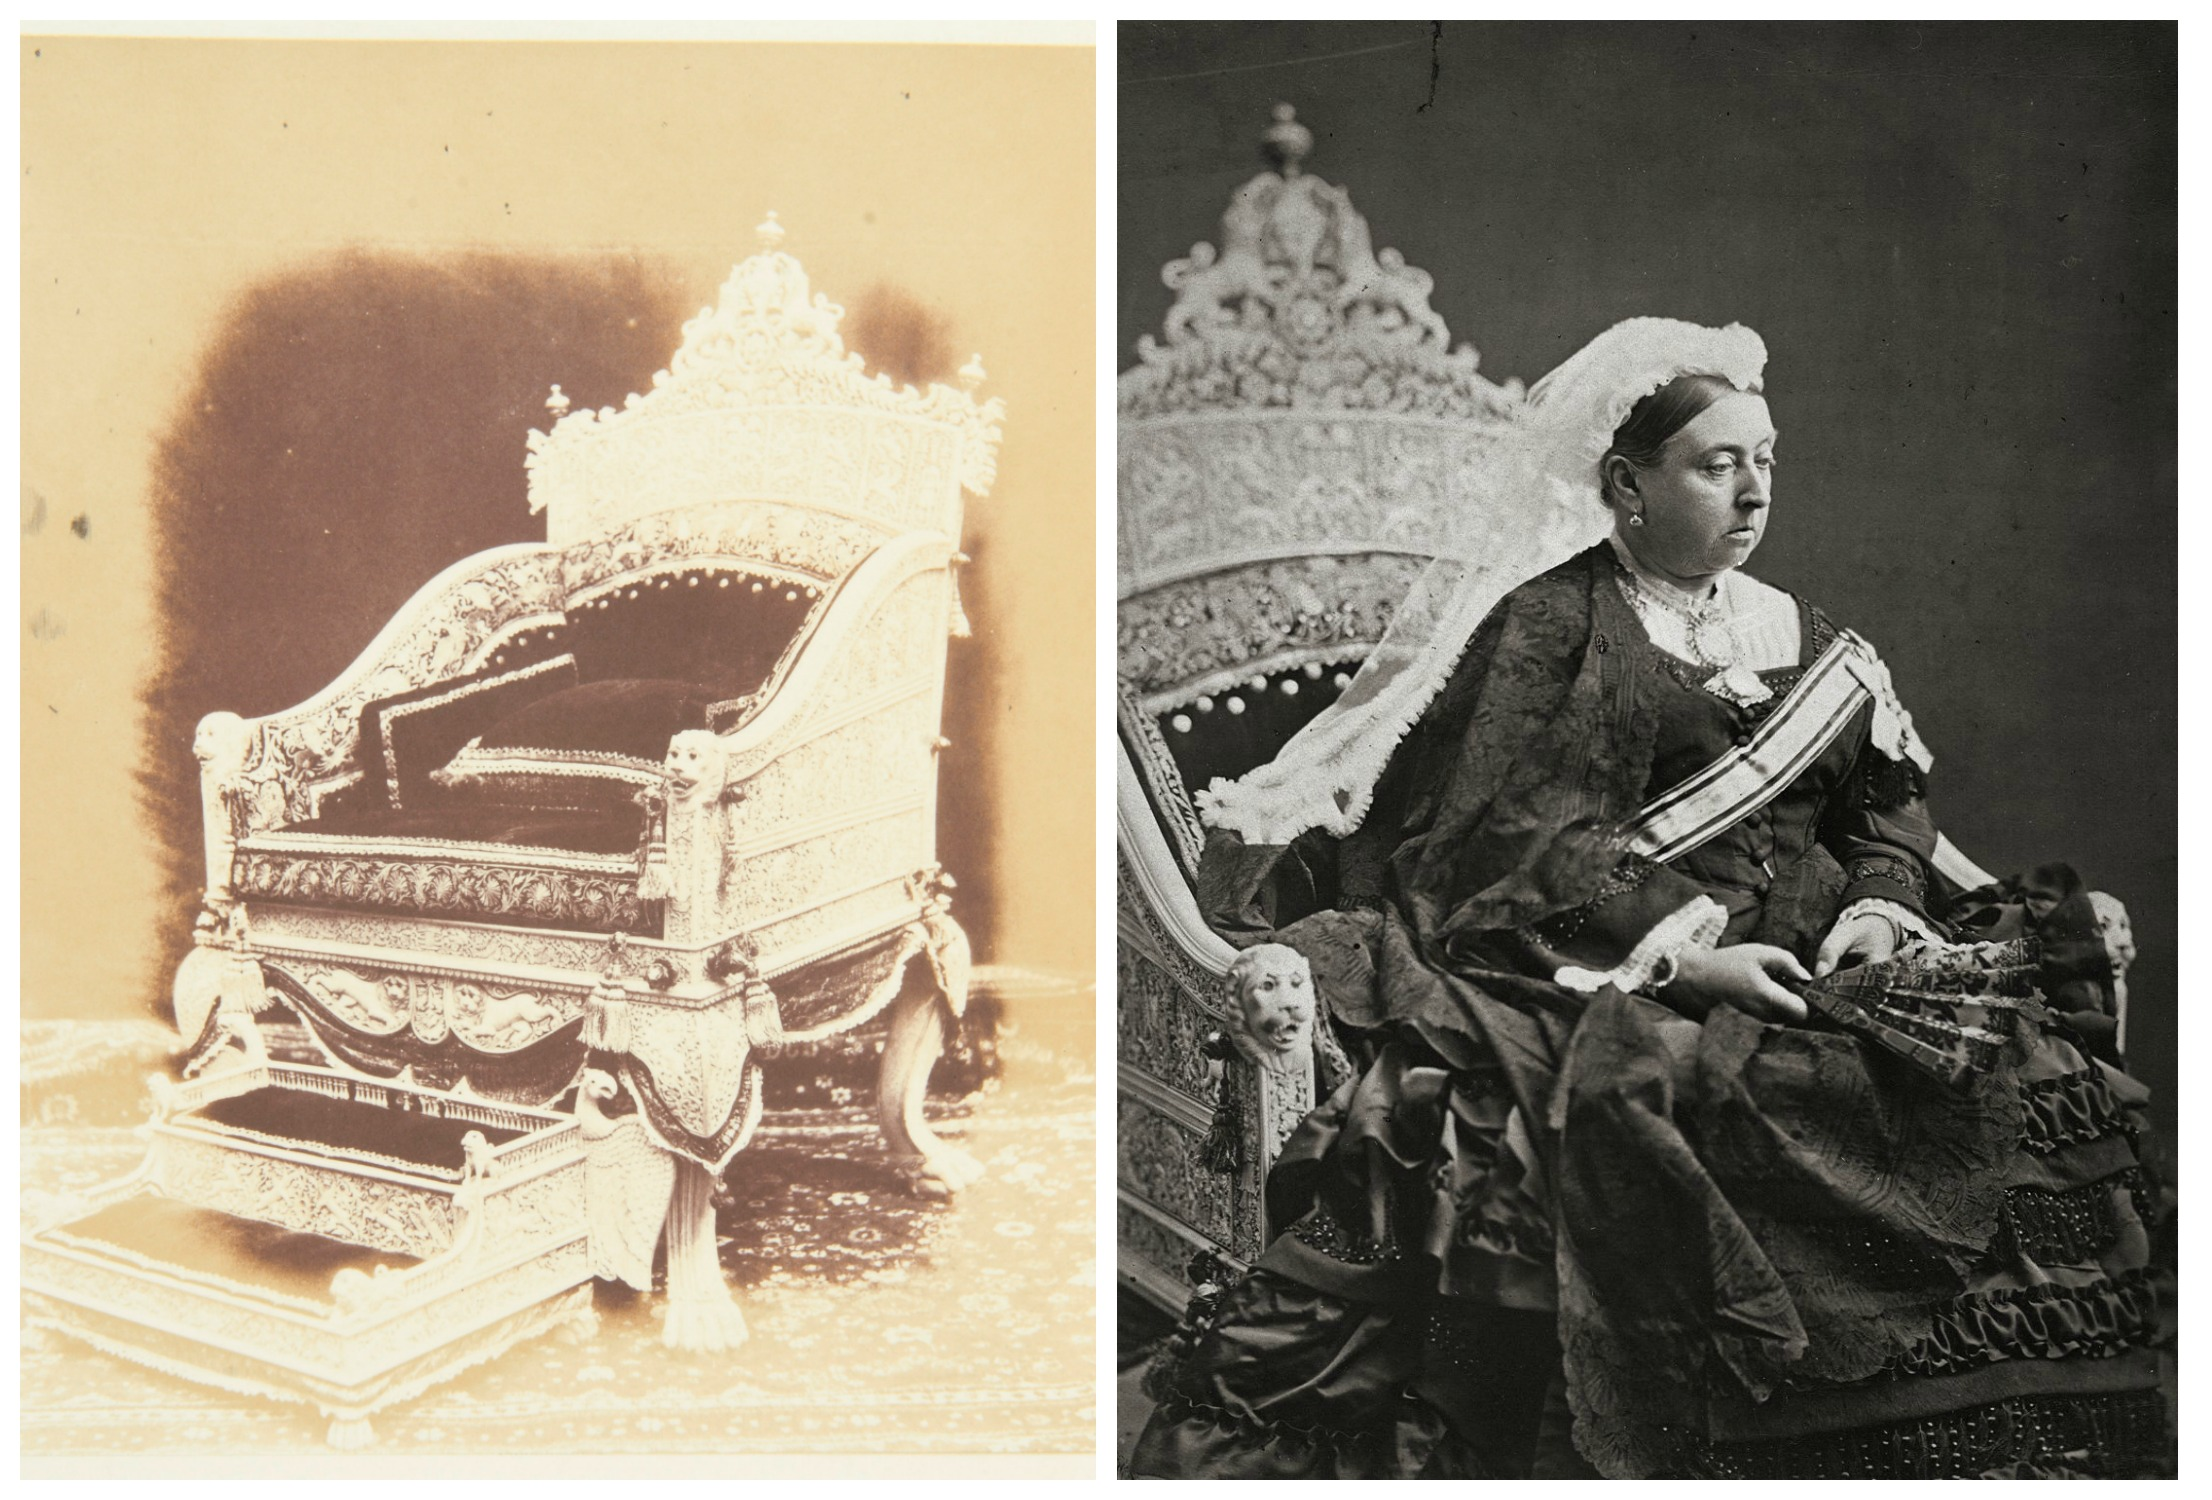 Left: Ivory Throne and Footstool, 1851; RIght: Official Portrait of Queen Victoria as 'Empress of India' on Ivory Throne, 1876 (Images:  Royal Collection Trust/© Her Majesty Queen Elizabeth II 2016 )